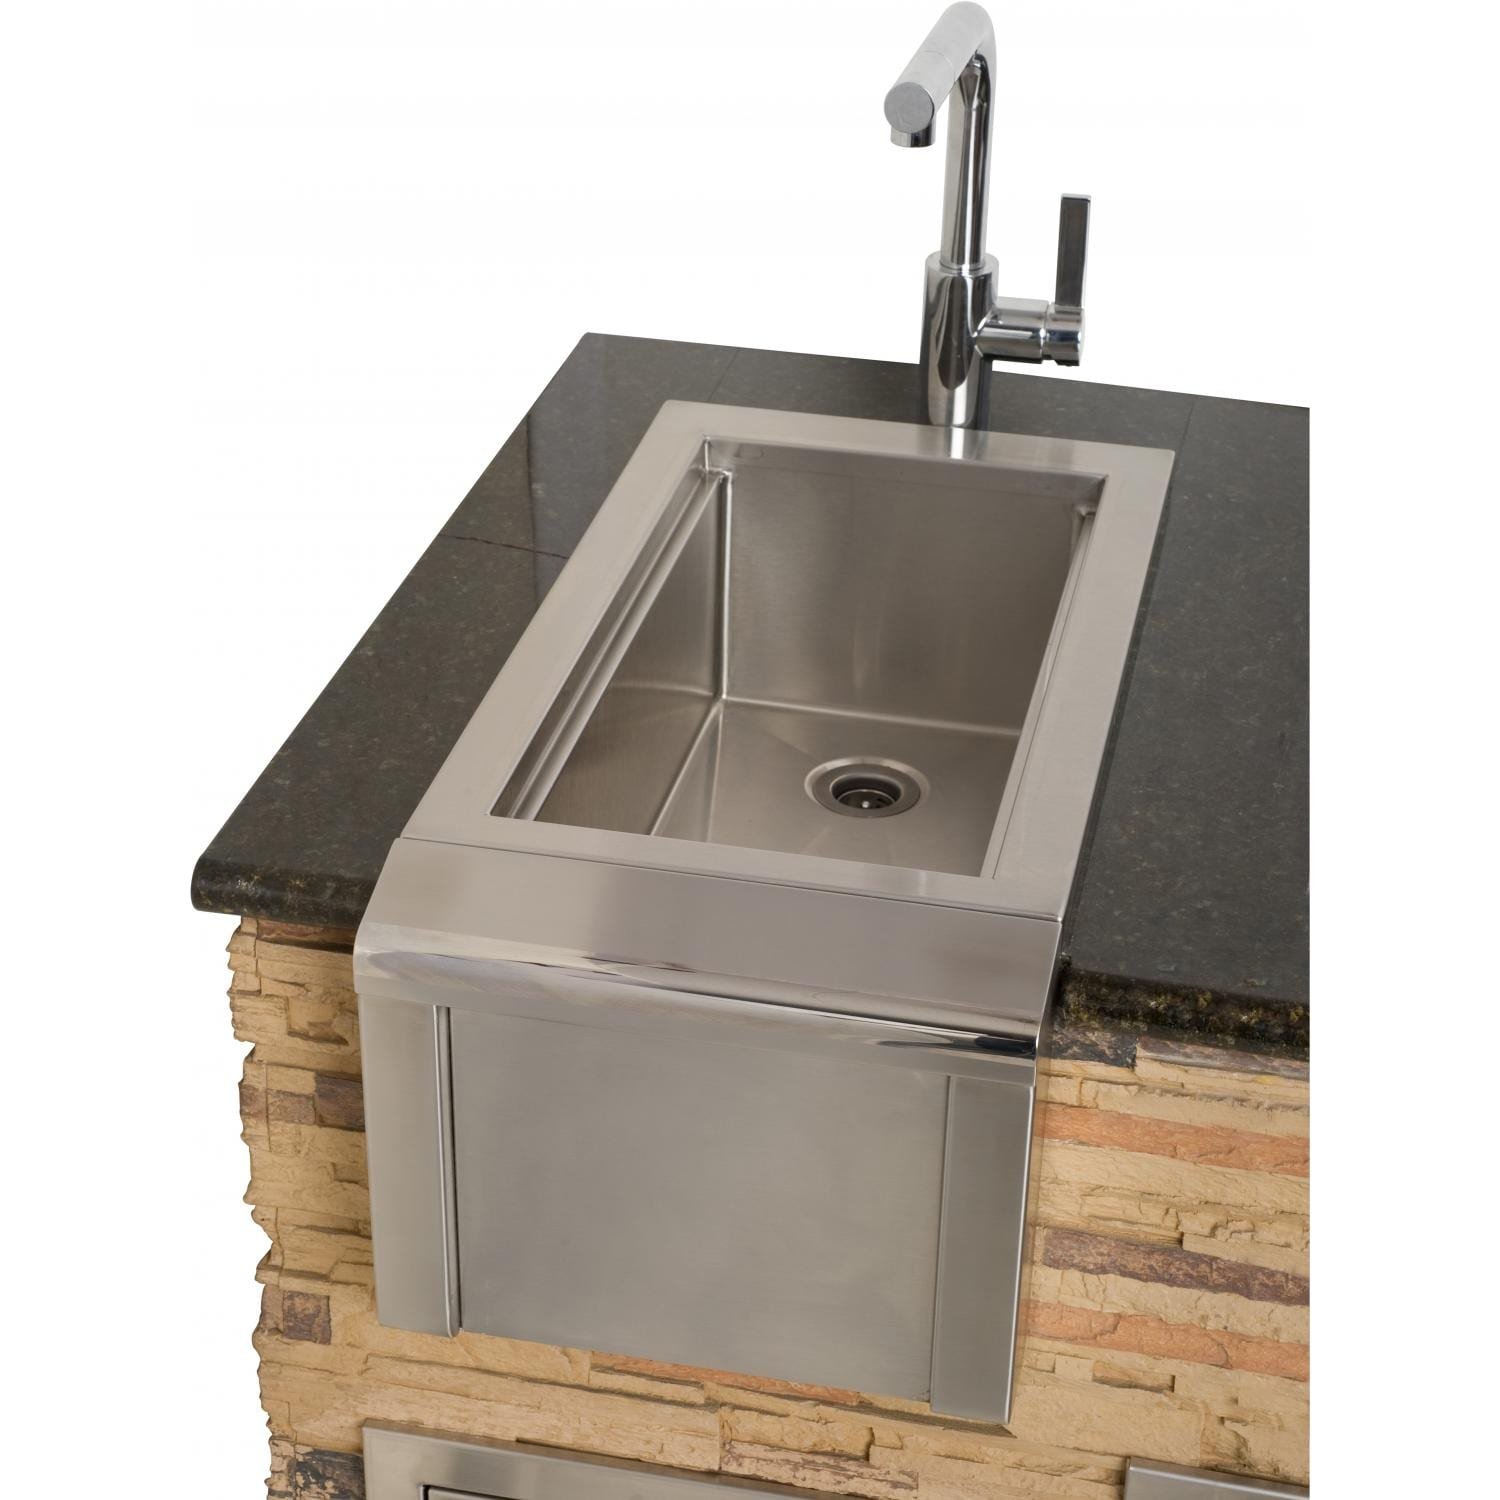 Alfresco 14-Inch Outdoor Versa Sink System